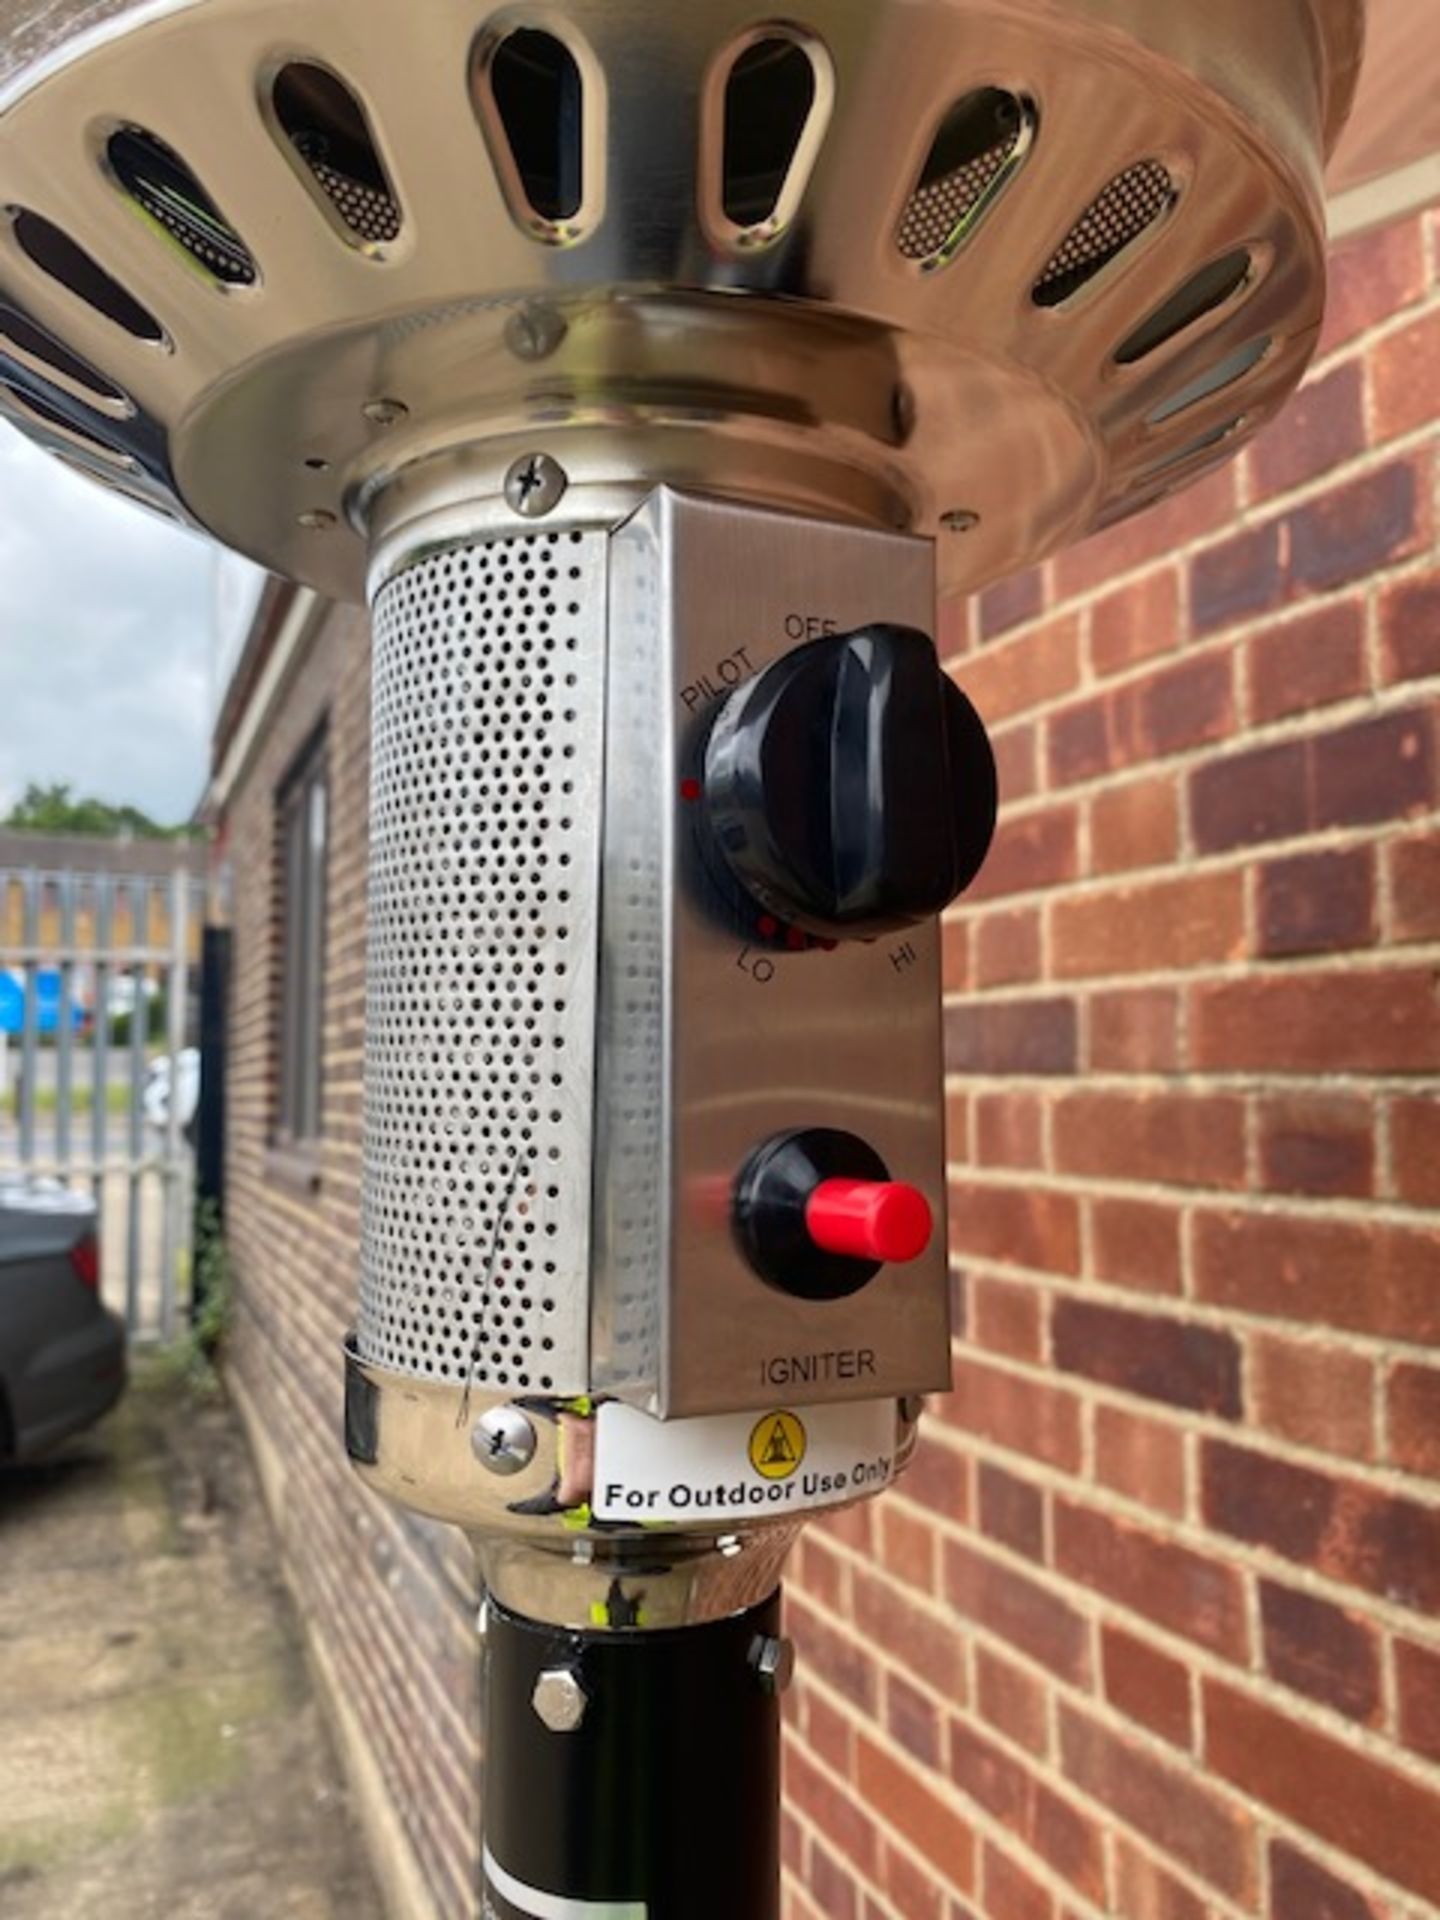 + VAT Brand New Chelsea Garden Company Garden Patio Heater With Cover - Item Is Available From - Image 5 of 9